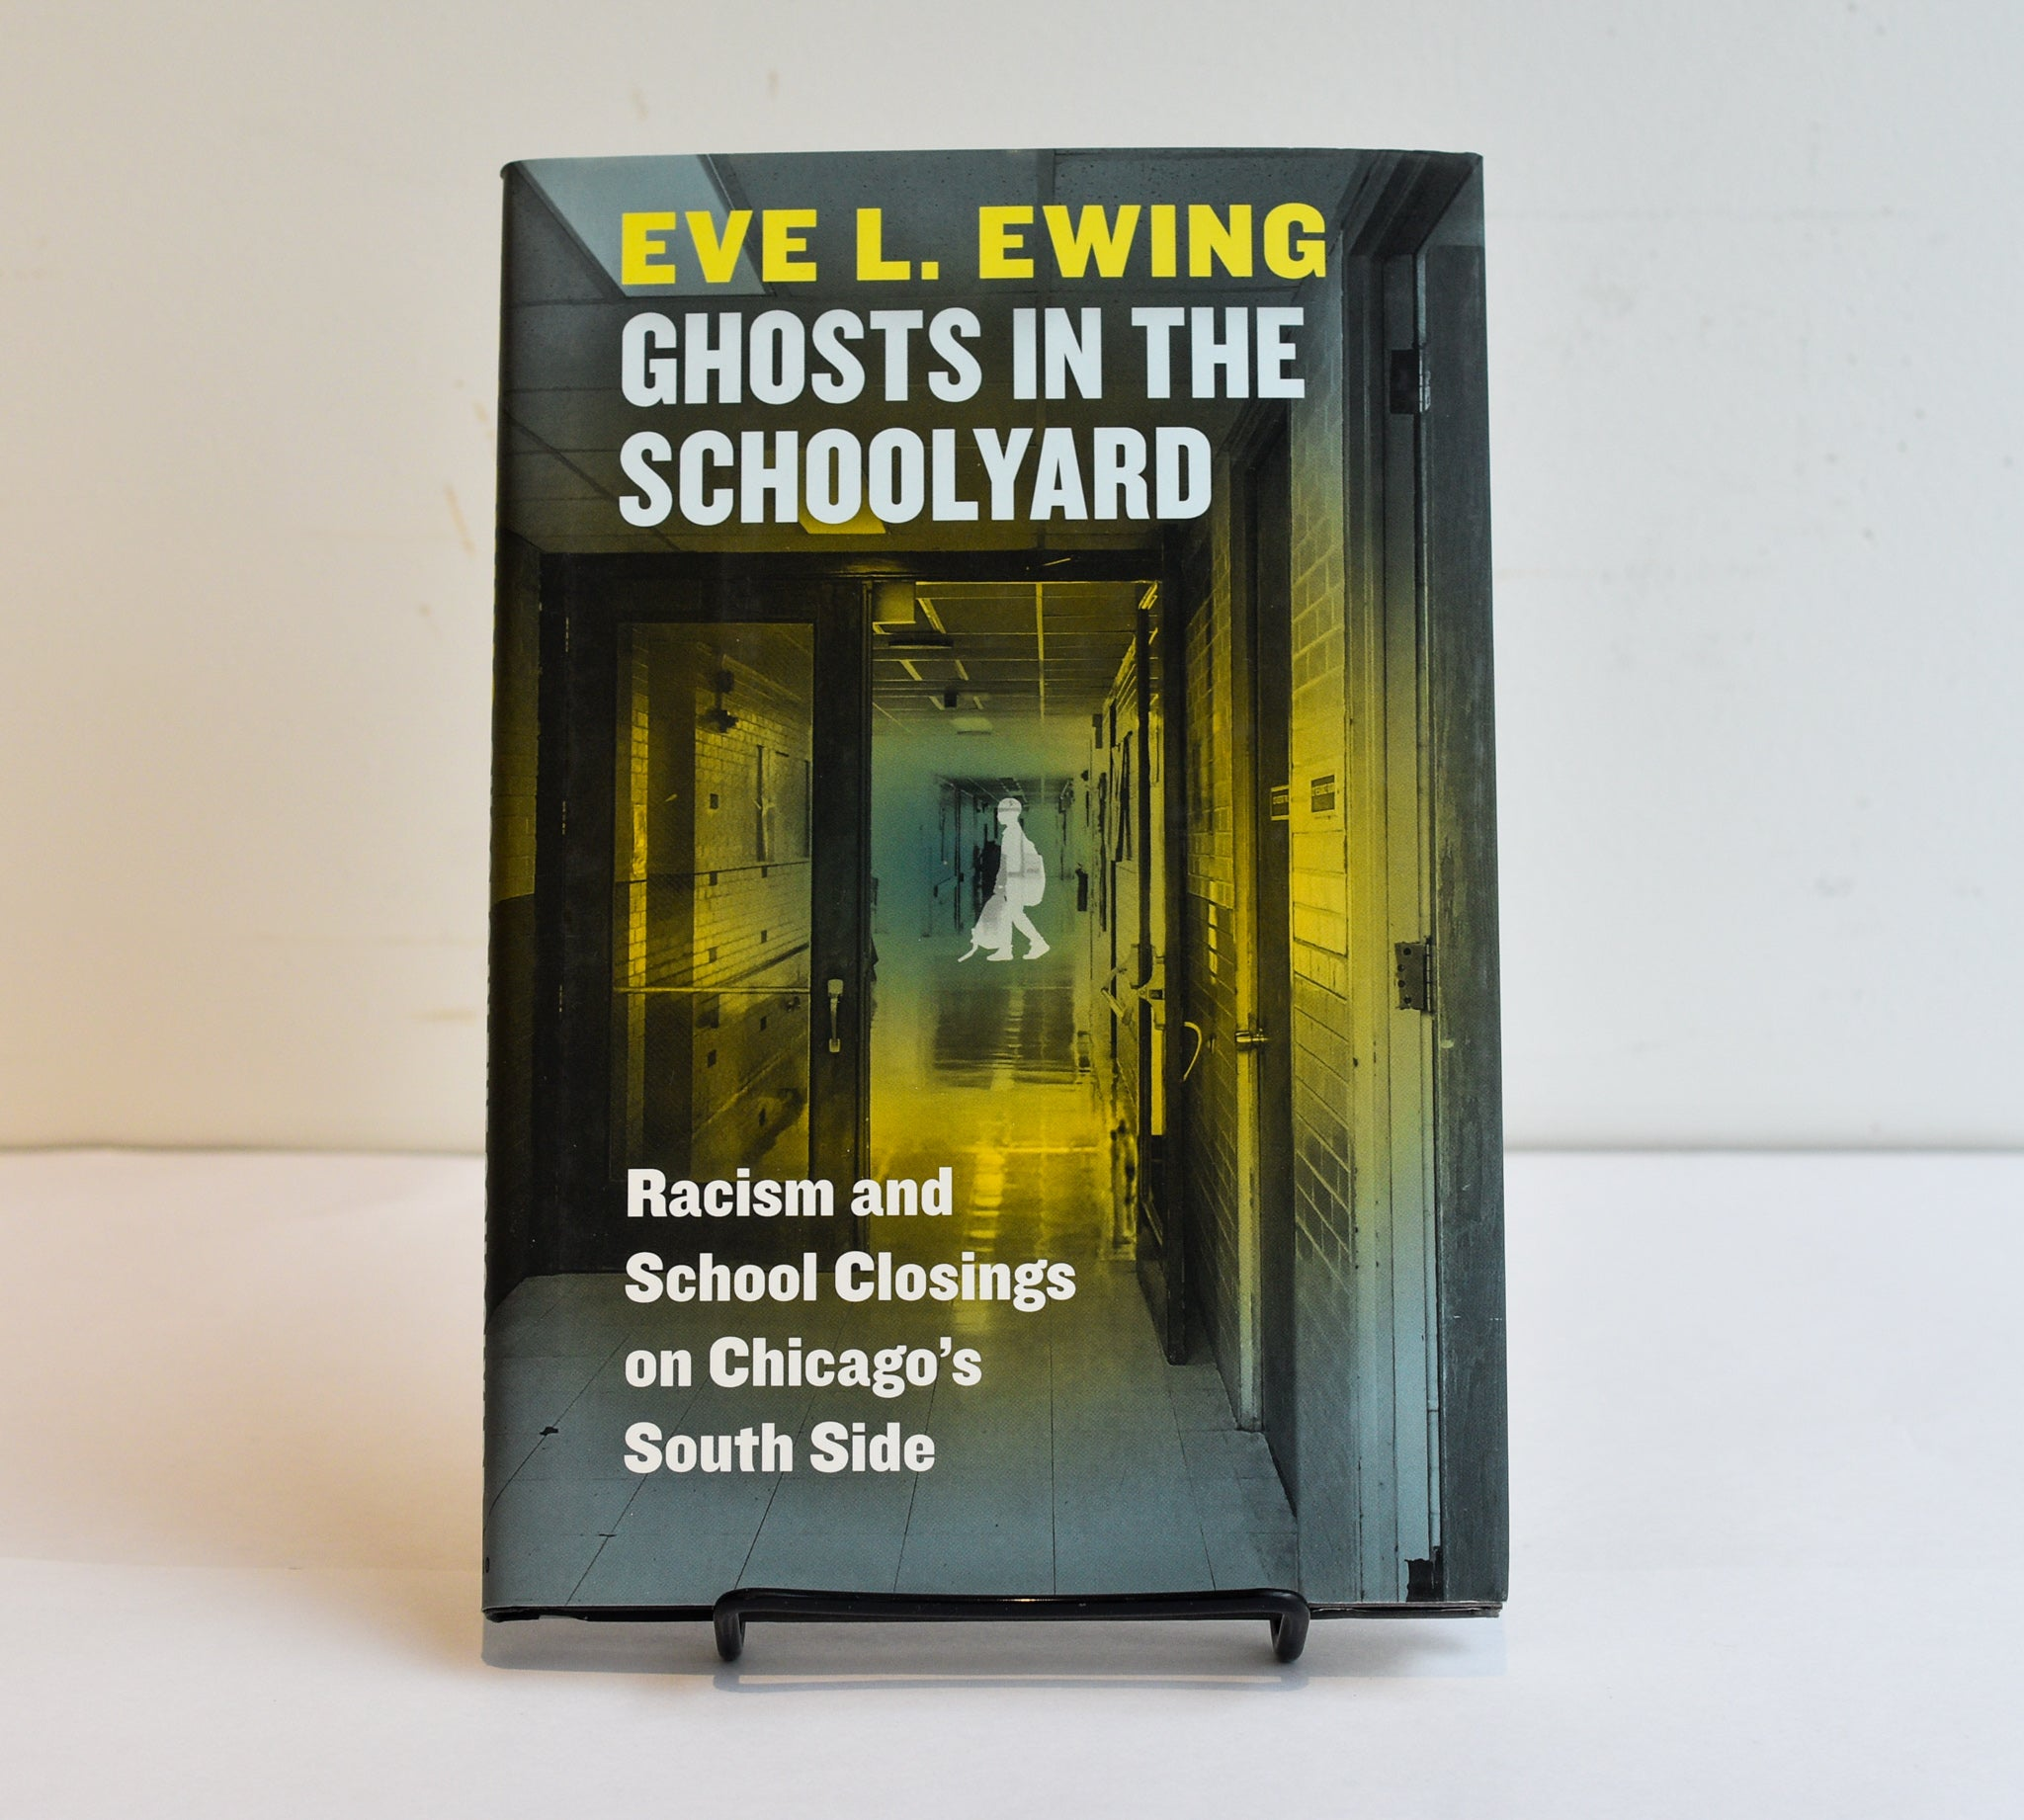 Ghosts in the Schoolyard by Eve L. Ewing